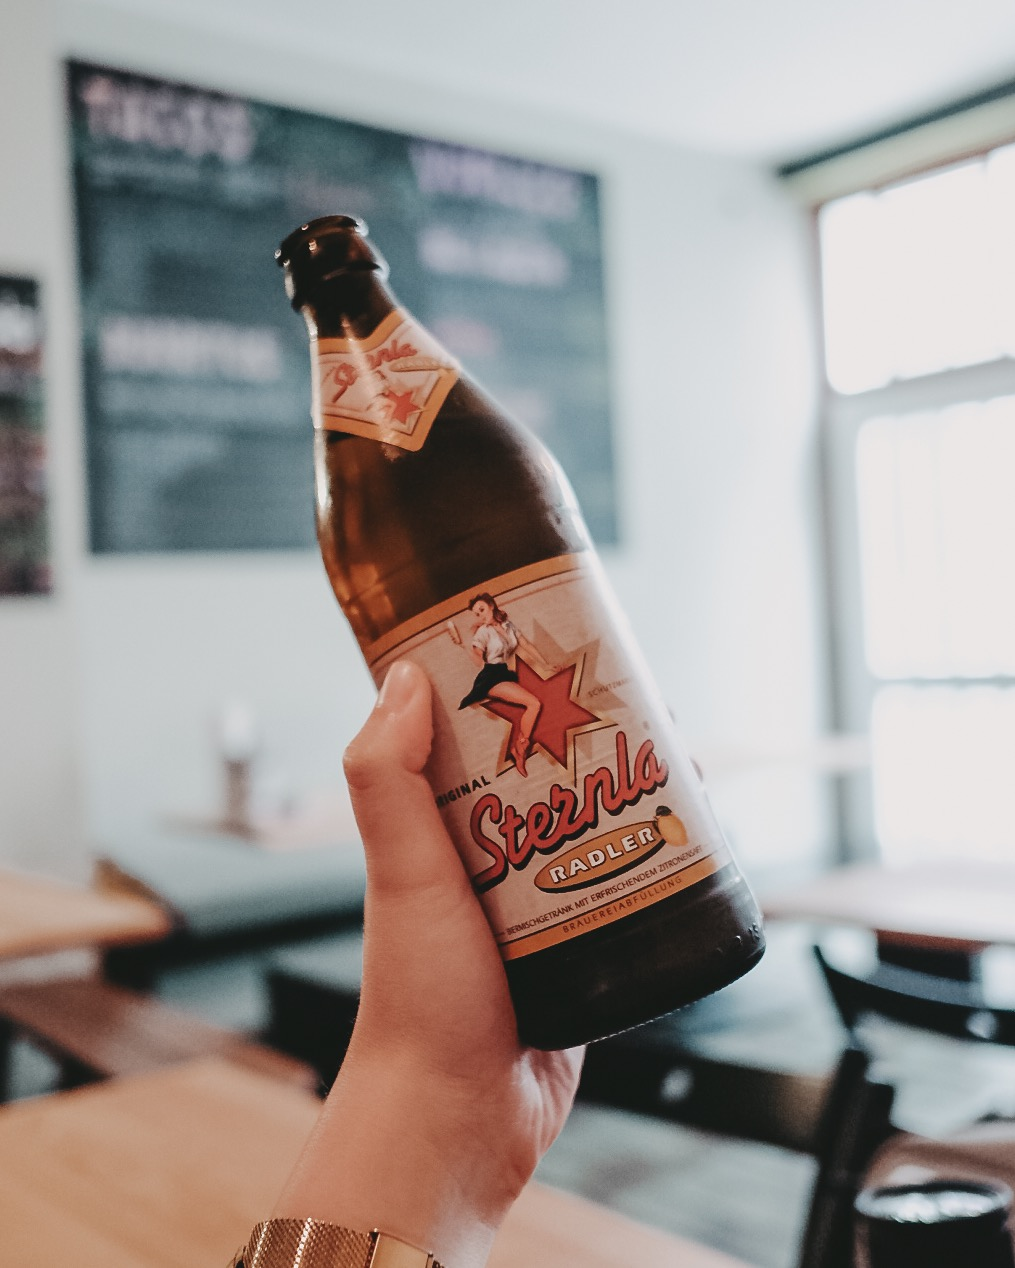 MAIZ TAQUERIA - To be honest: We were way too excited for our food. So here's a picture of the excellent Radler we had instead of a burrito shot.